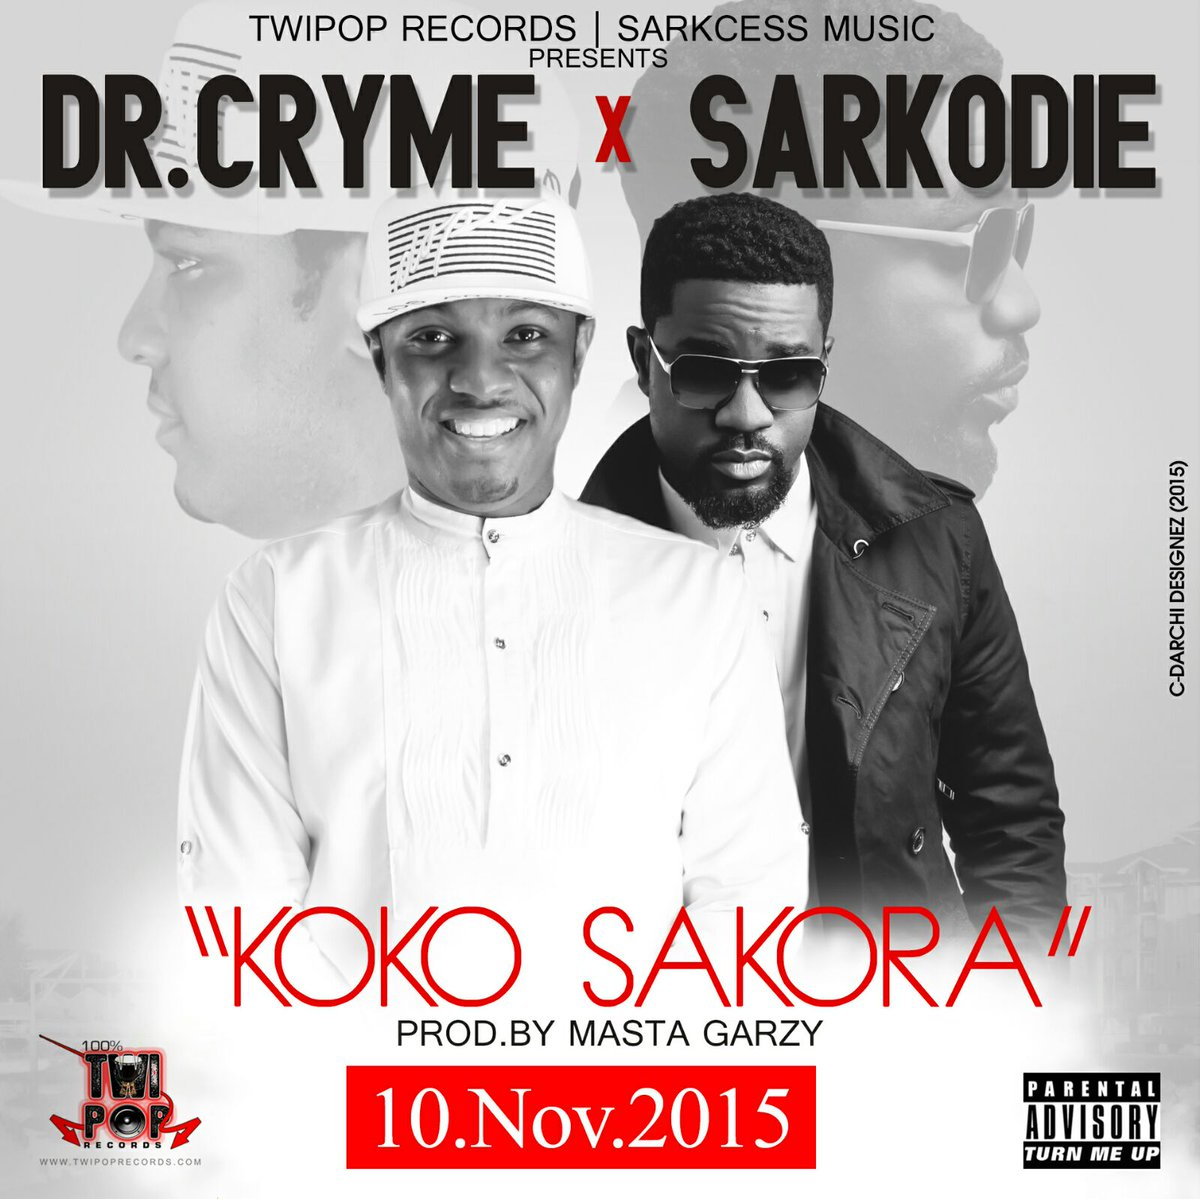 "HOTTEST BANGER! @drcryme x @sarkodie ""KOKO SAKORA"" Officially drops10th.Nov.15 Twipop Records